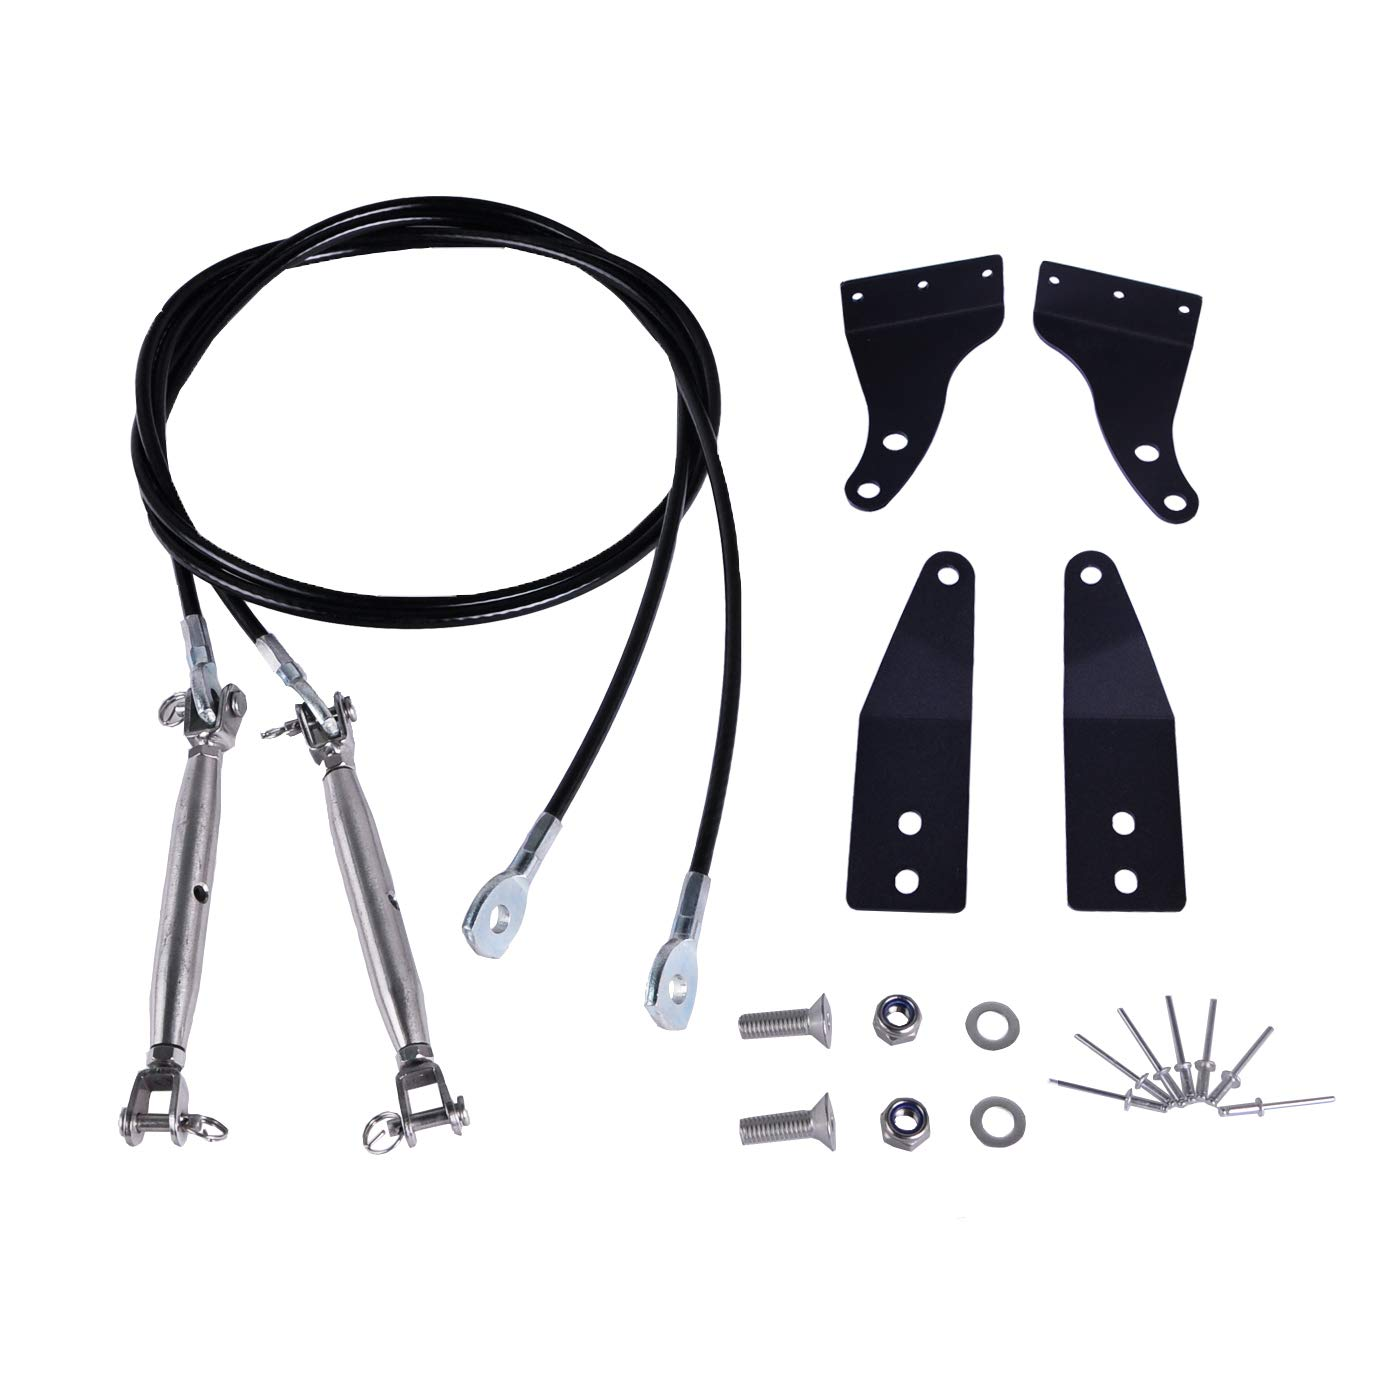 OMOTOR 2pcs Limb Riser Kit fit for JK Jeep Wrangler 2007-2018 Through the jungle Protector Obstacle Eliminate Rope